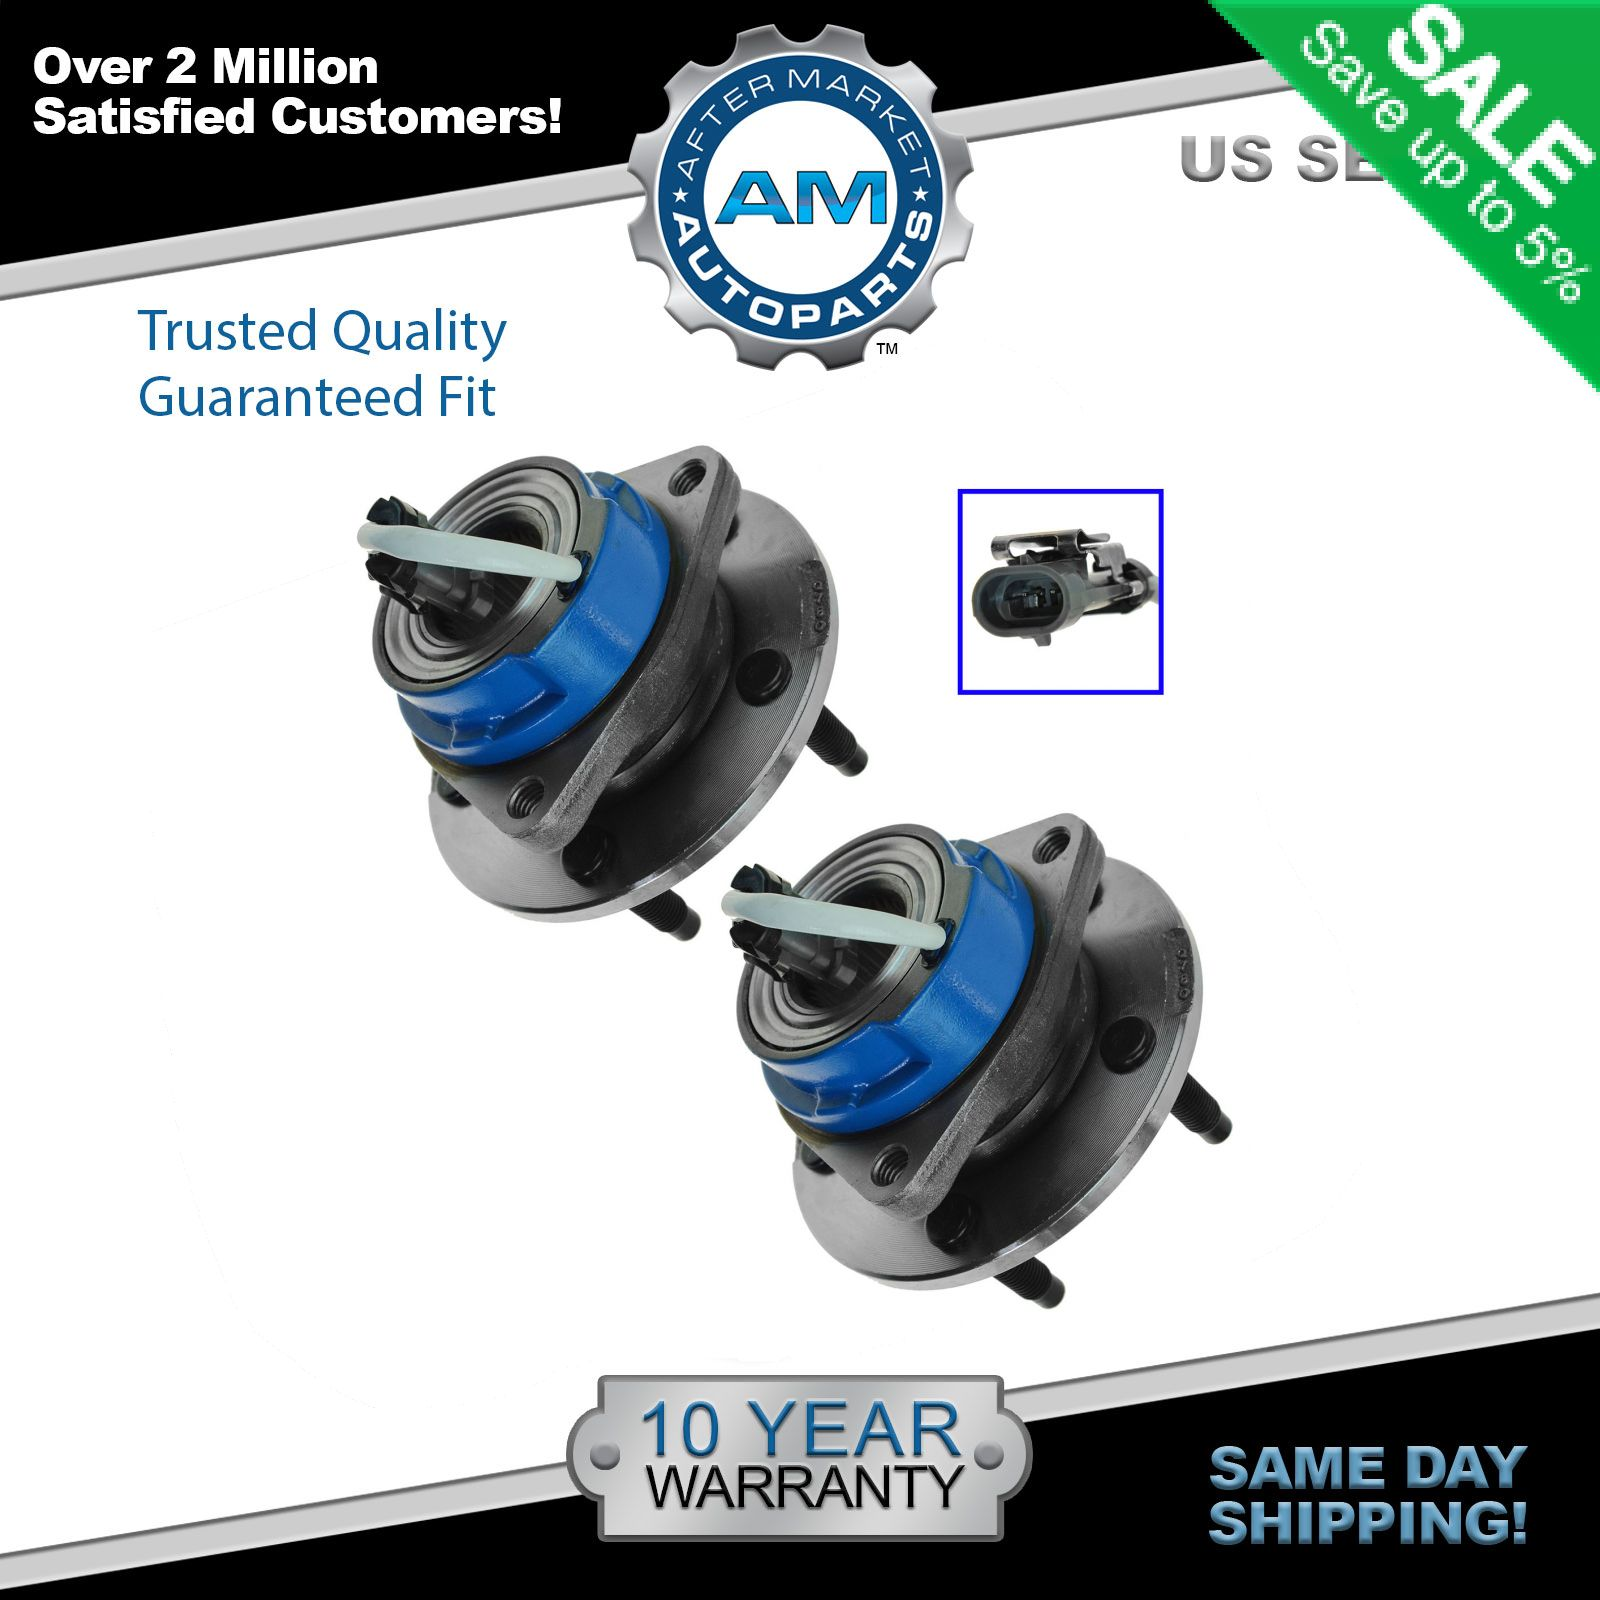 Trq front rear wheel hub bearing assembly pair set for chevy pontiac w abs